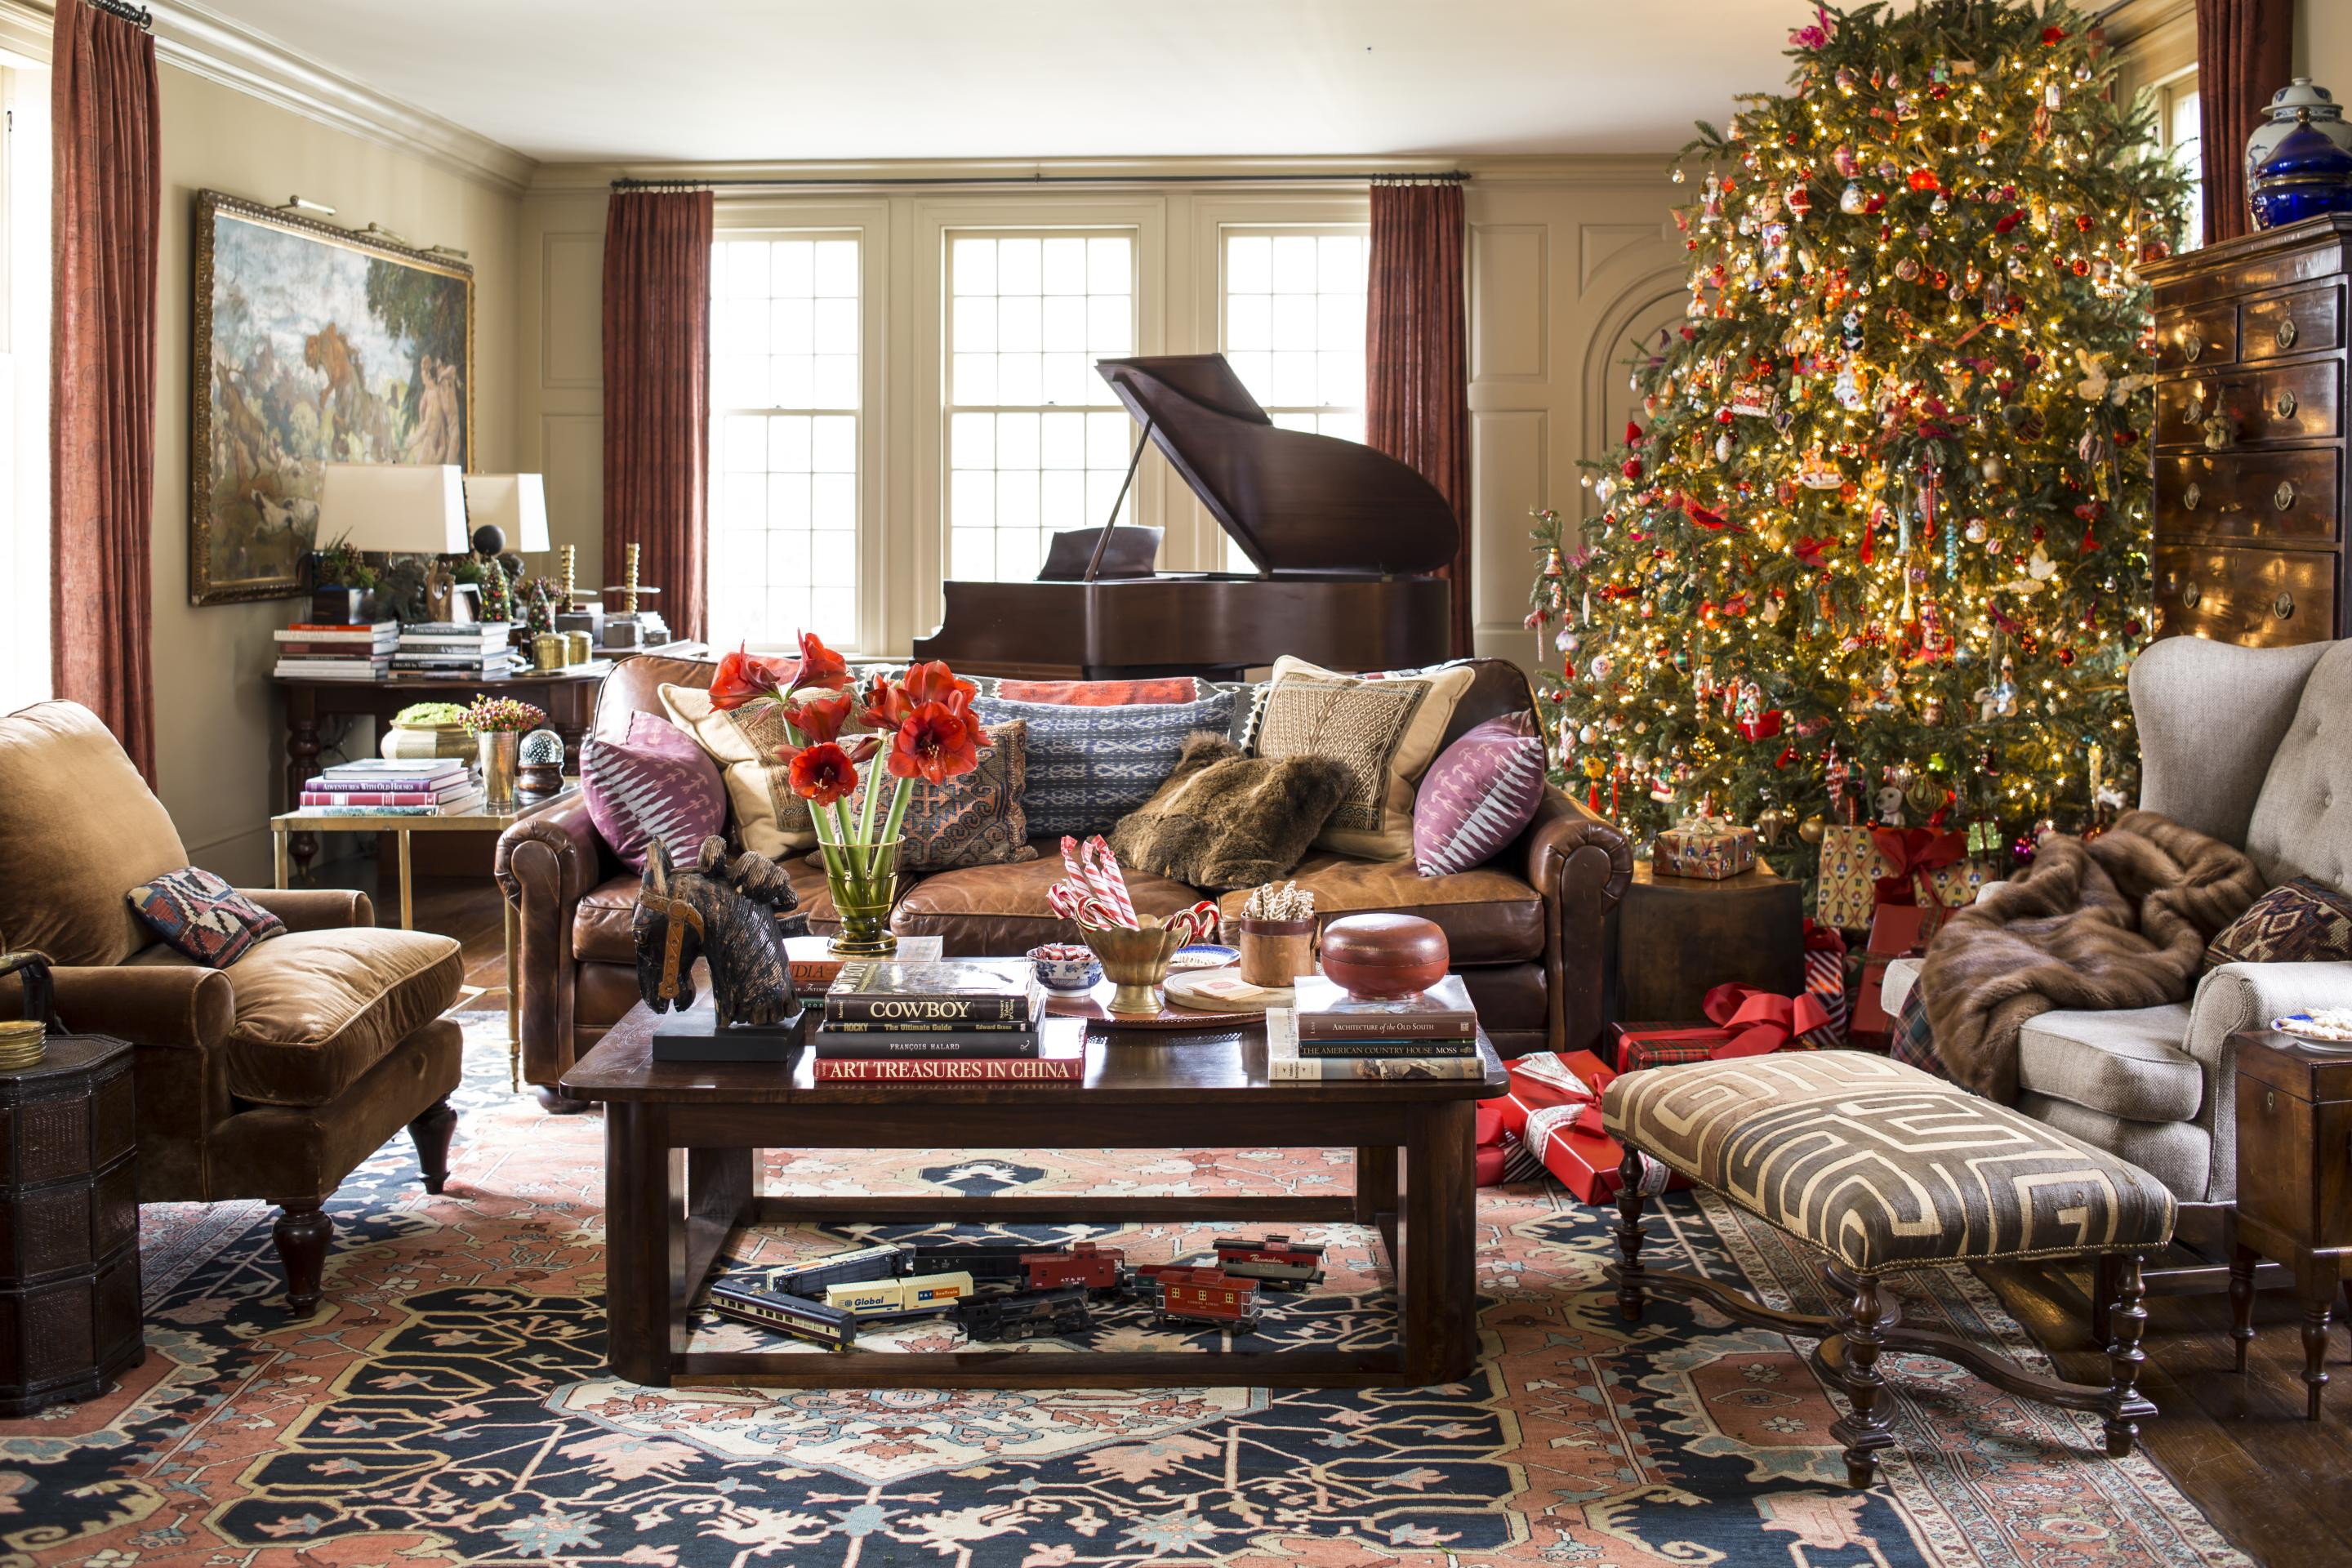 john bessler - Christmas Home Decor Ideas